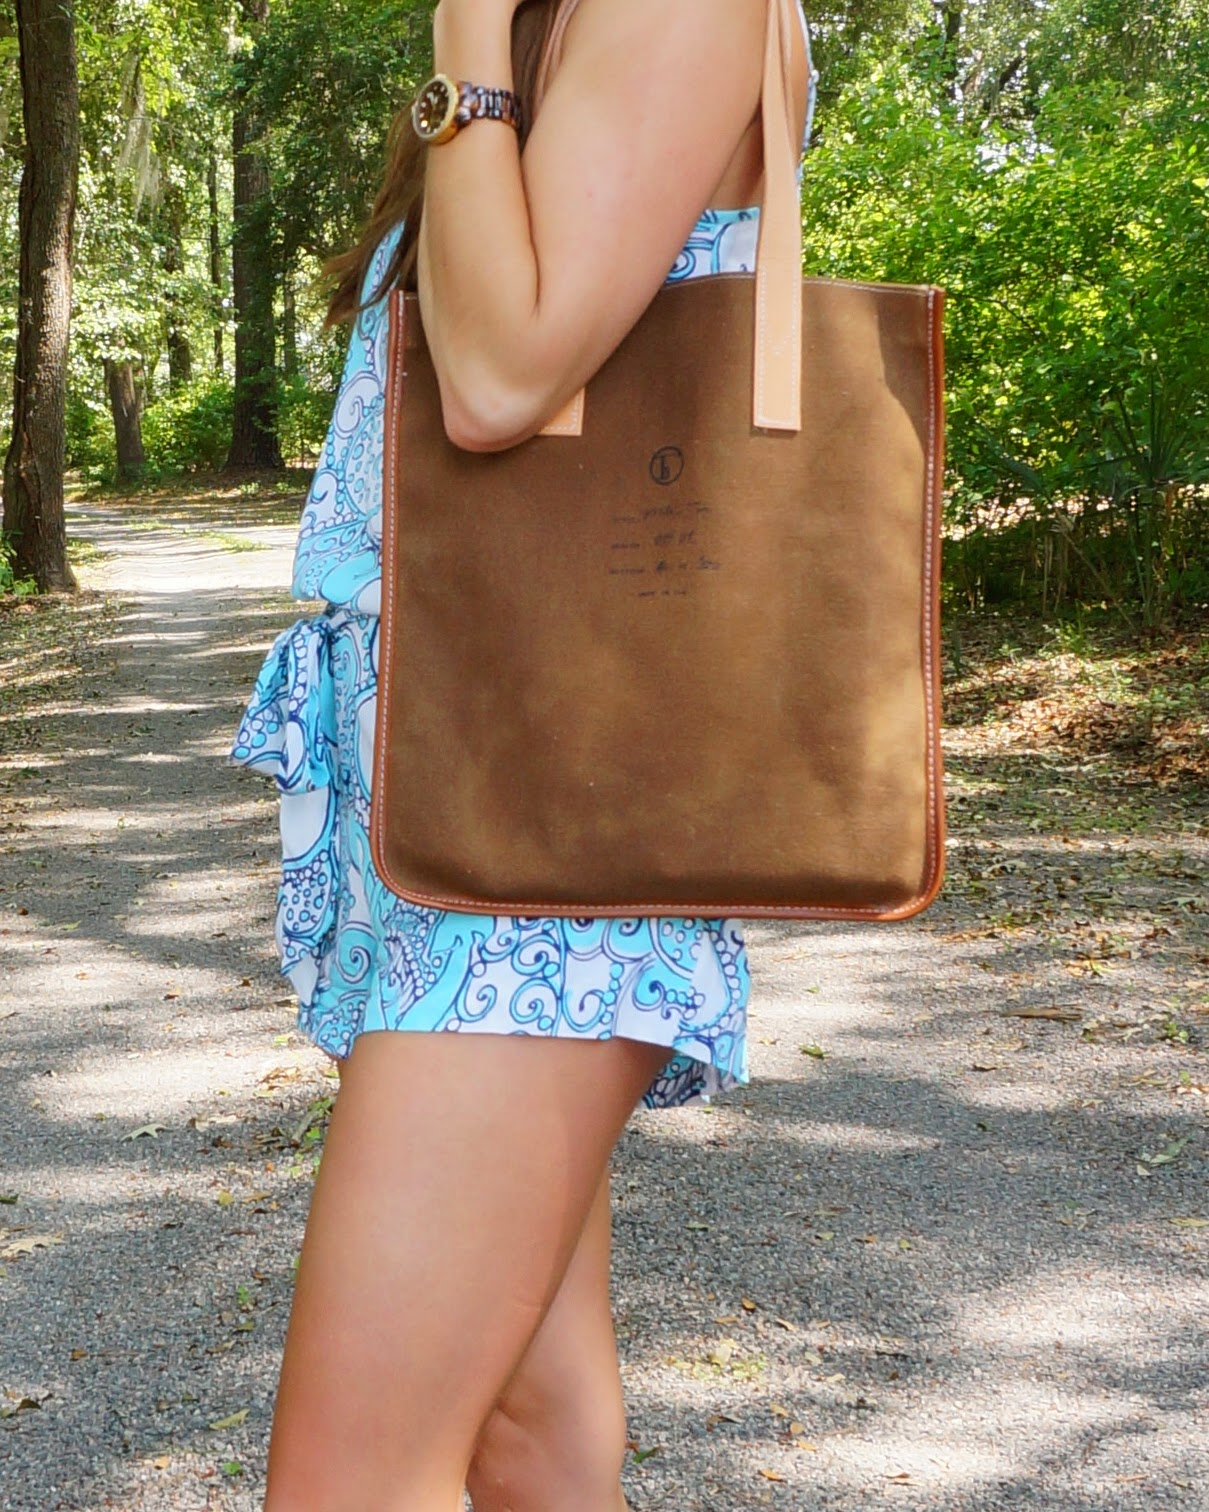 With Pearls & a Stethoscope | Lilly Pulitzer Deanna Tank Romper Playsuit & Flea bag woodland Milk tote